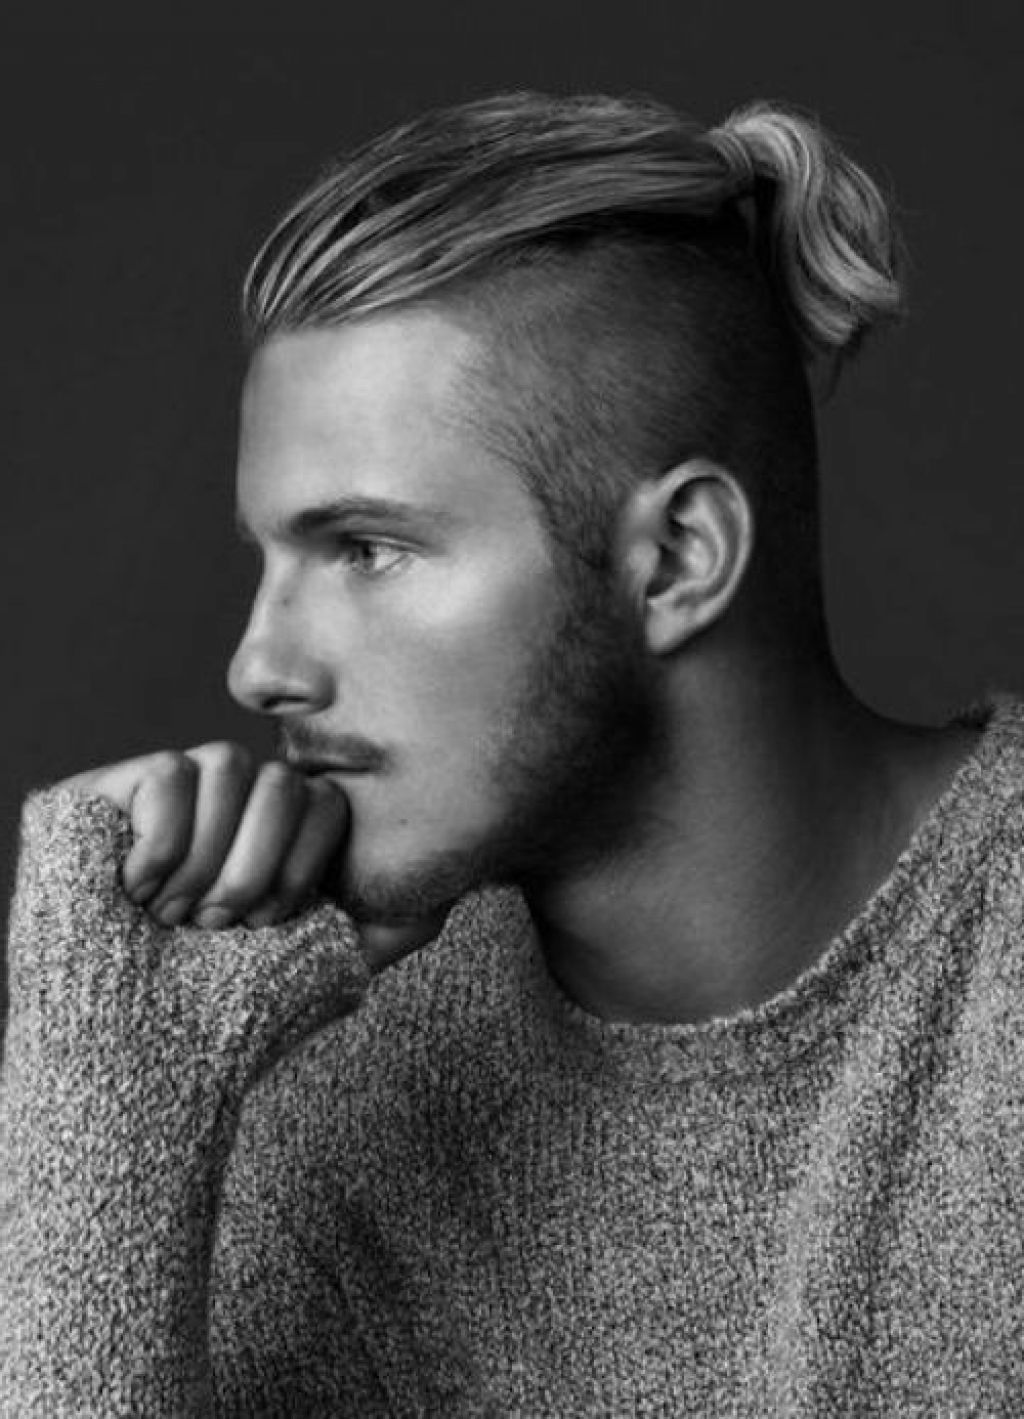 1000+ images about Mens Hair on Pinterest